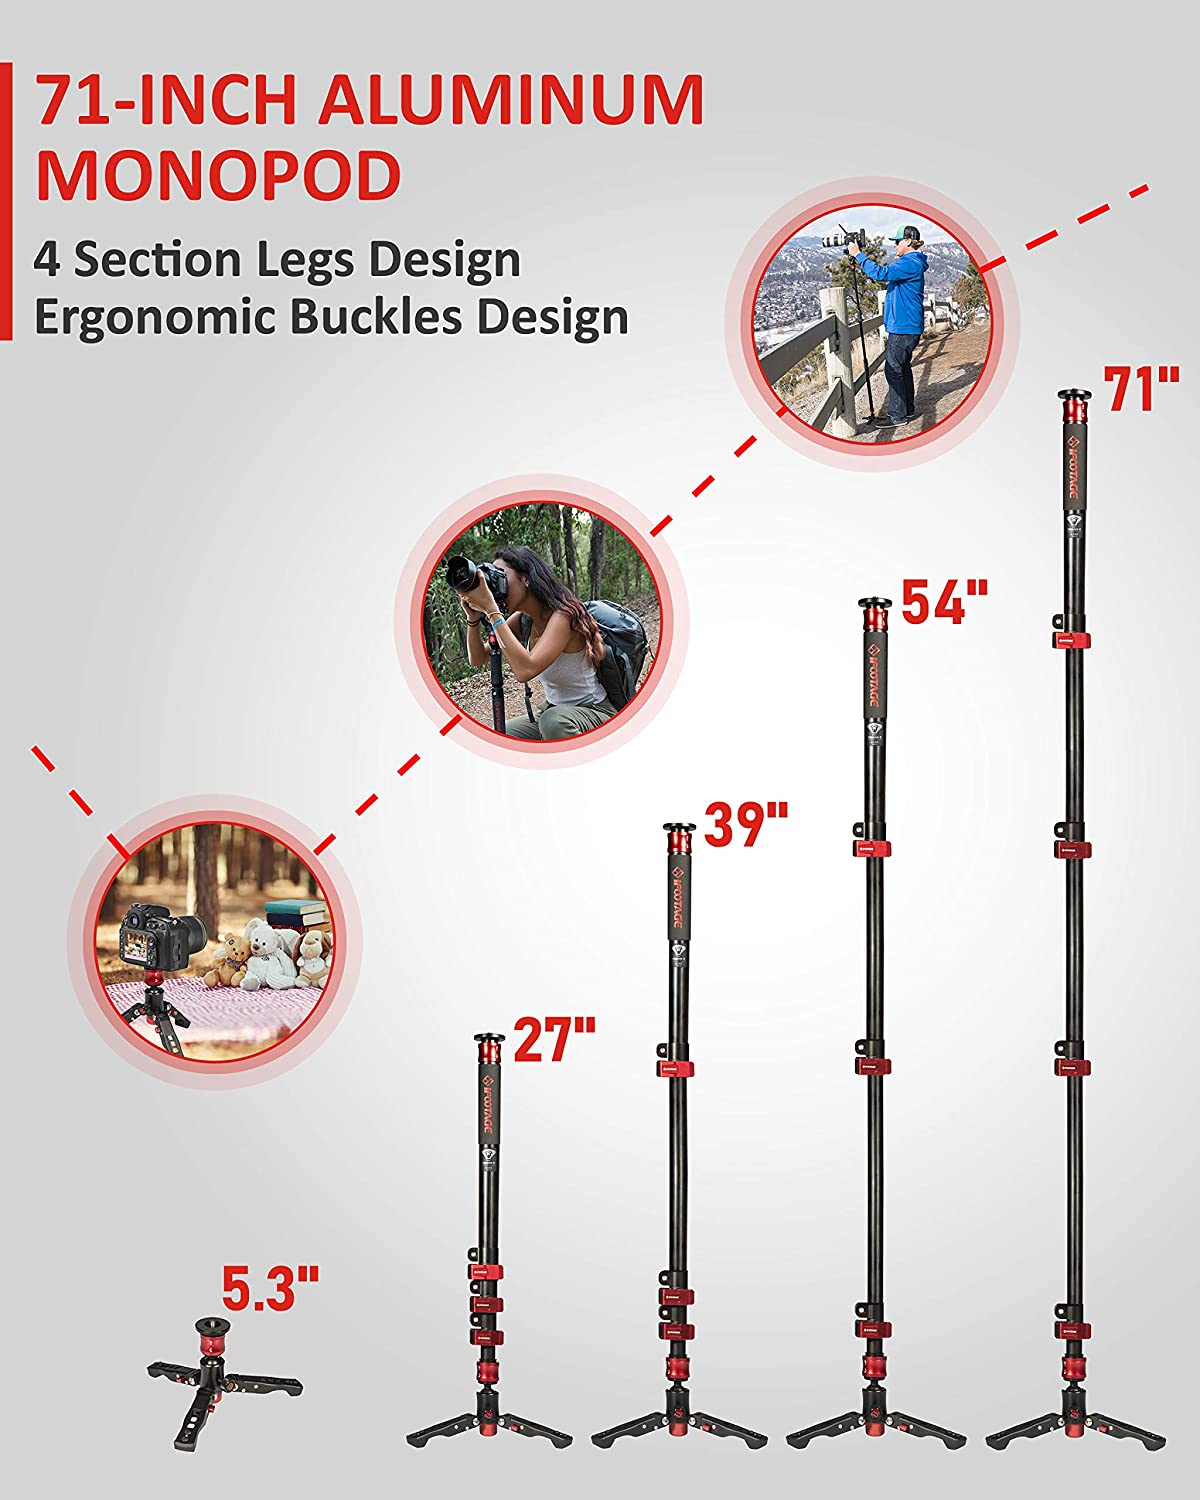 IFOOTAGE Video Monopod Professional 71 Aluminum Telescopic Monopods with Folding Three Feet Support Base Compatible for DSLR Camcorders